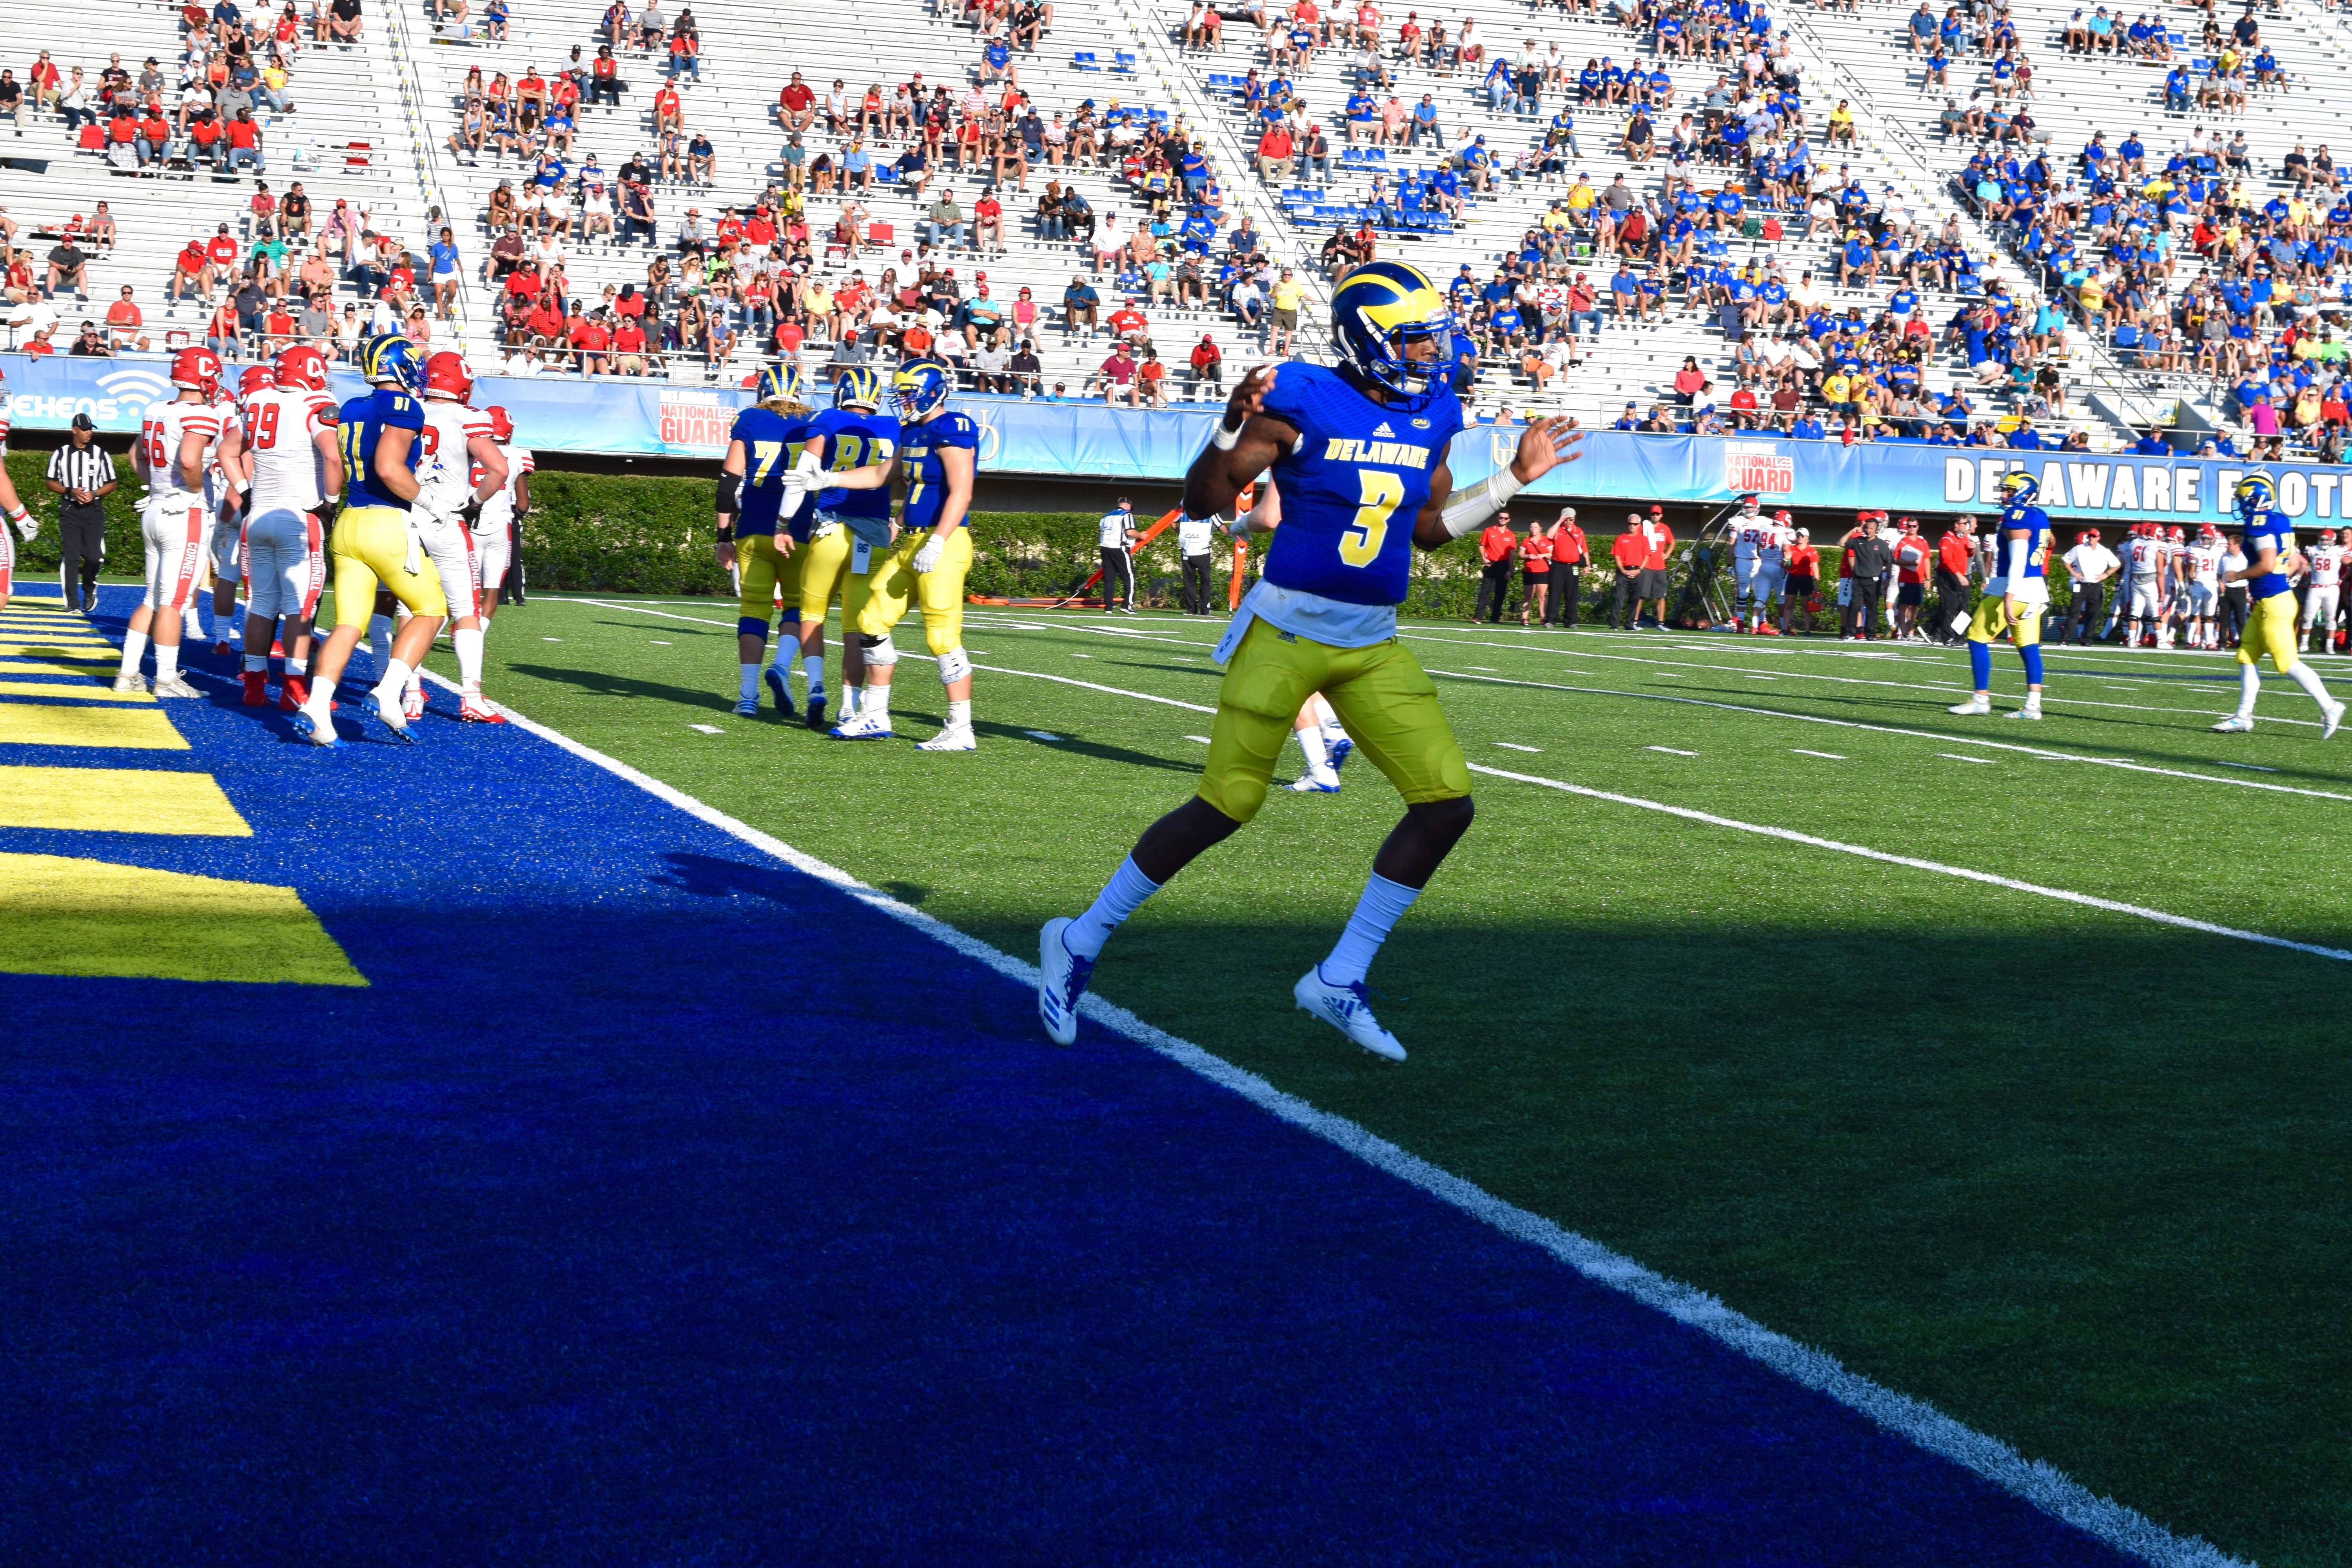 Delaware's offense starts to get on track